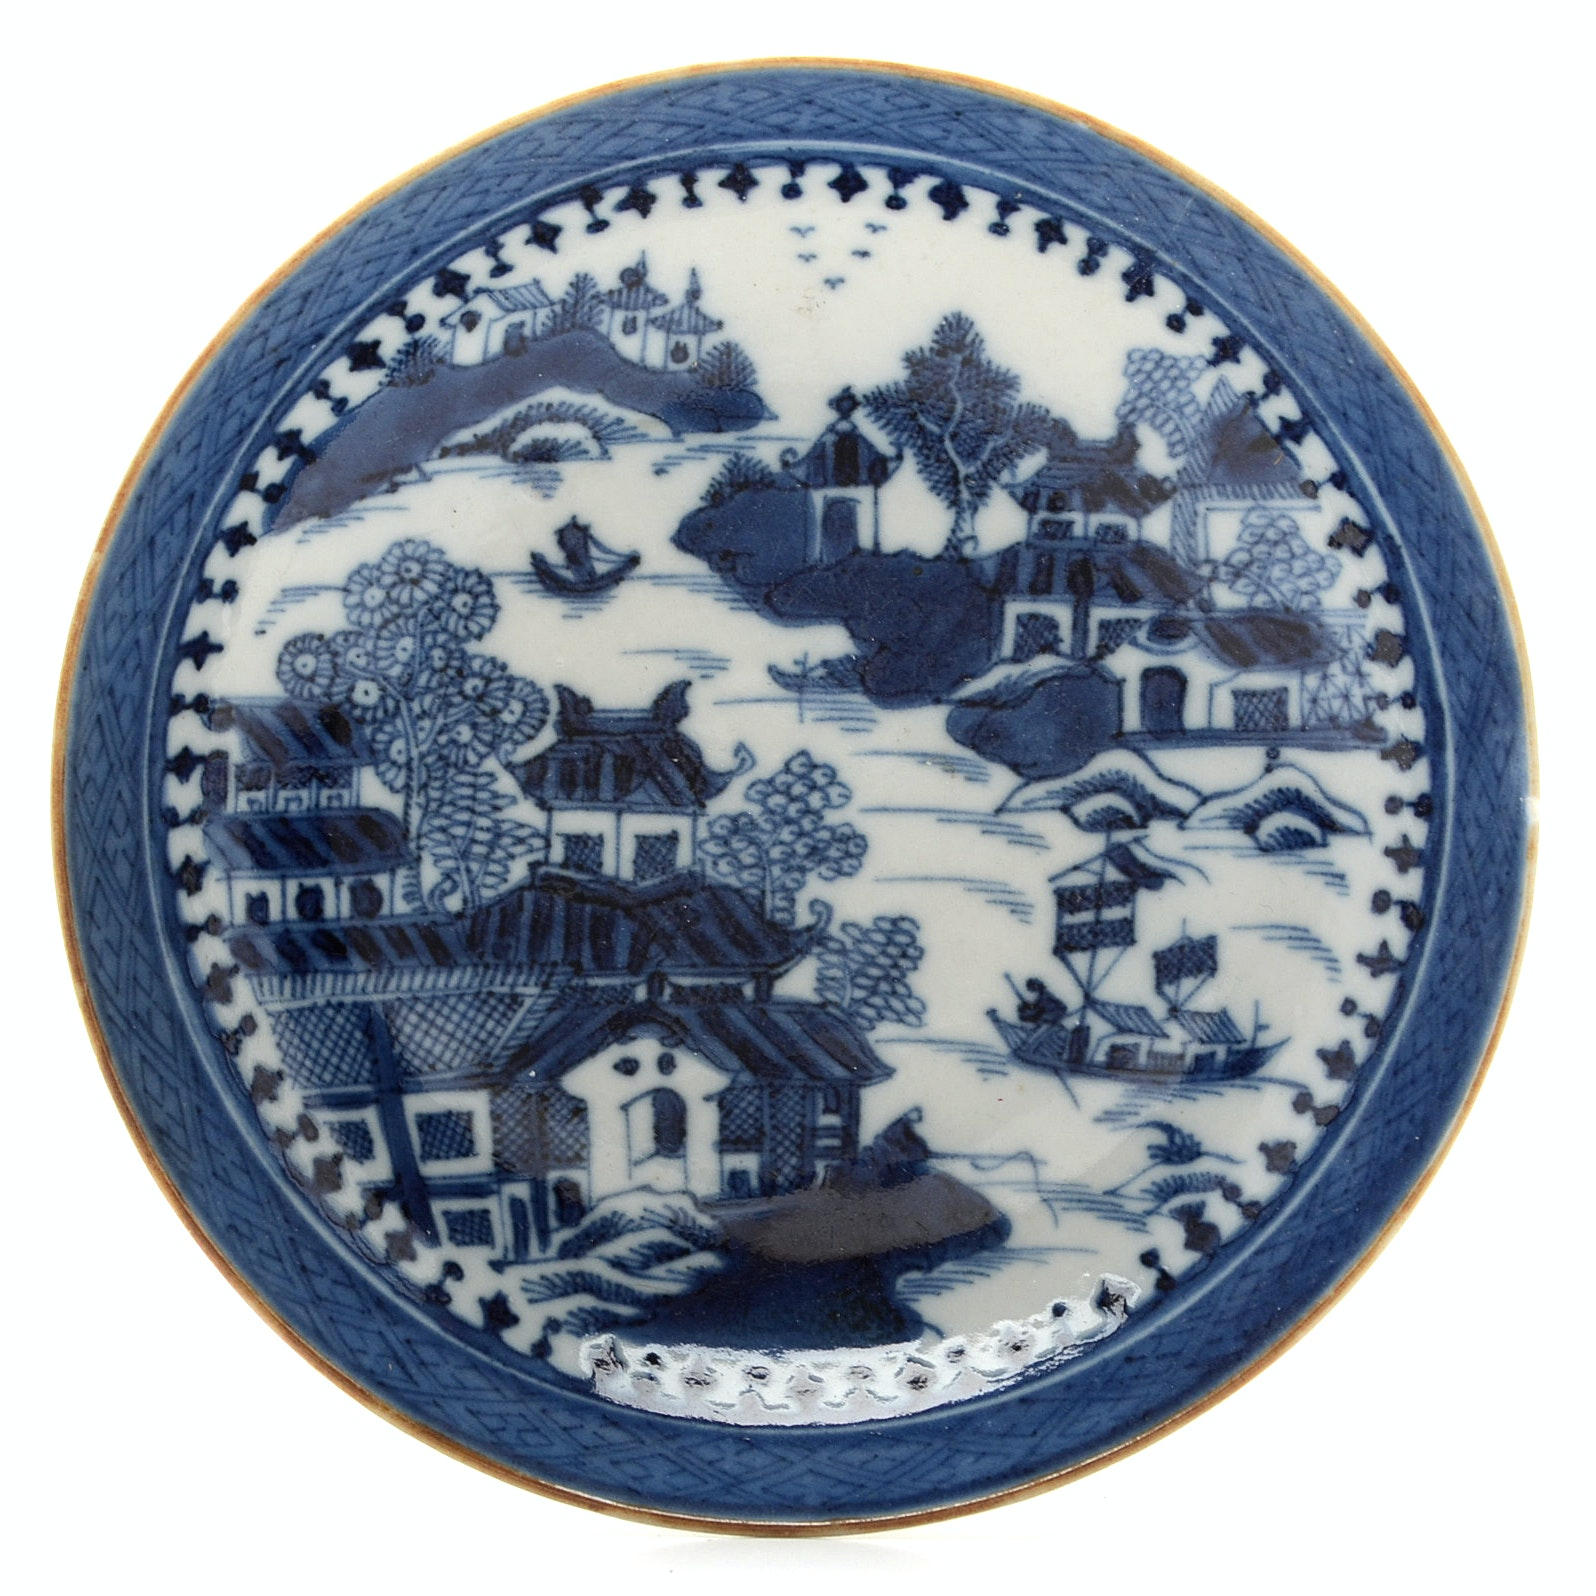 Qing Dynasty Small Blue and White Porcelain Dish